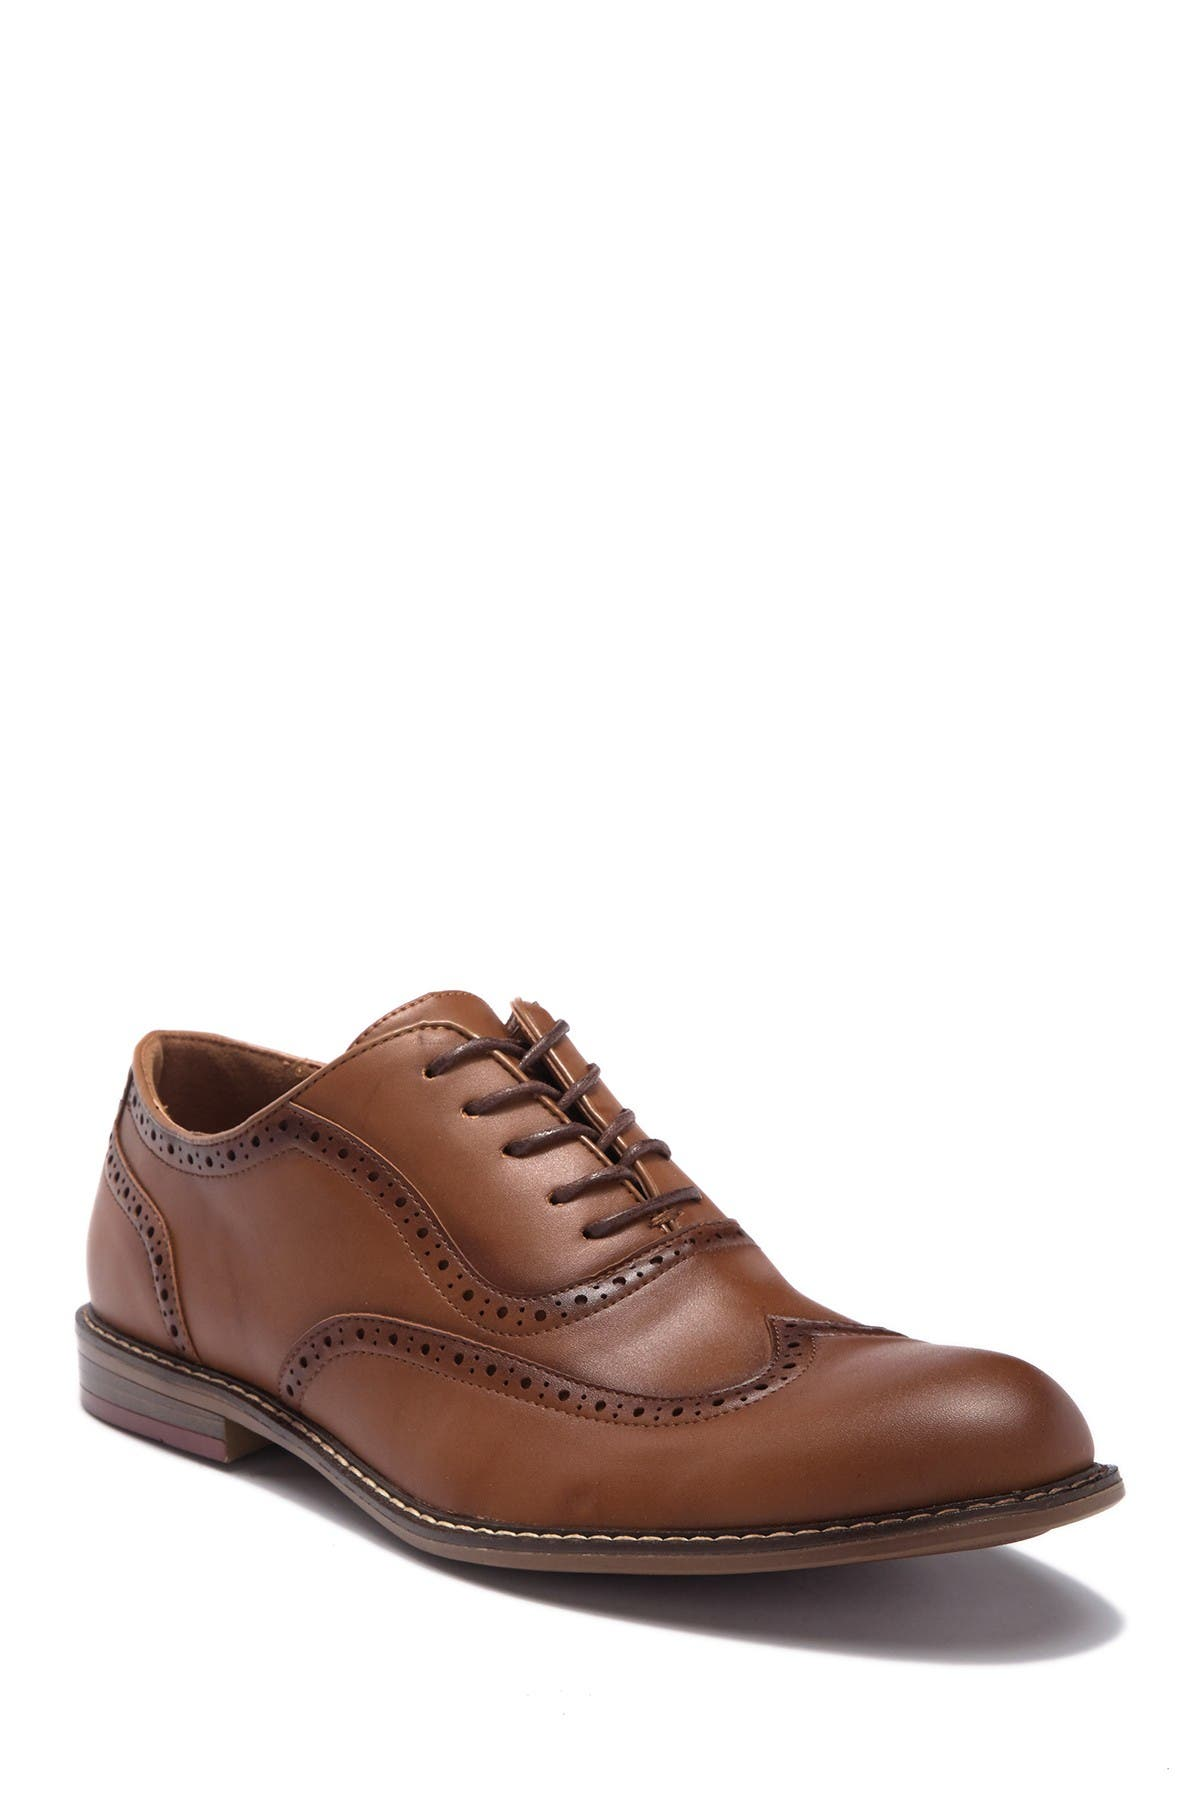 Image of XRAY The Cabaletta Wingtip Oxford